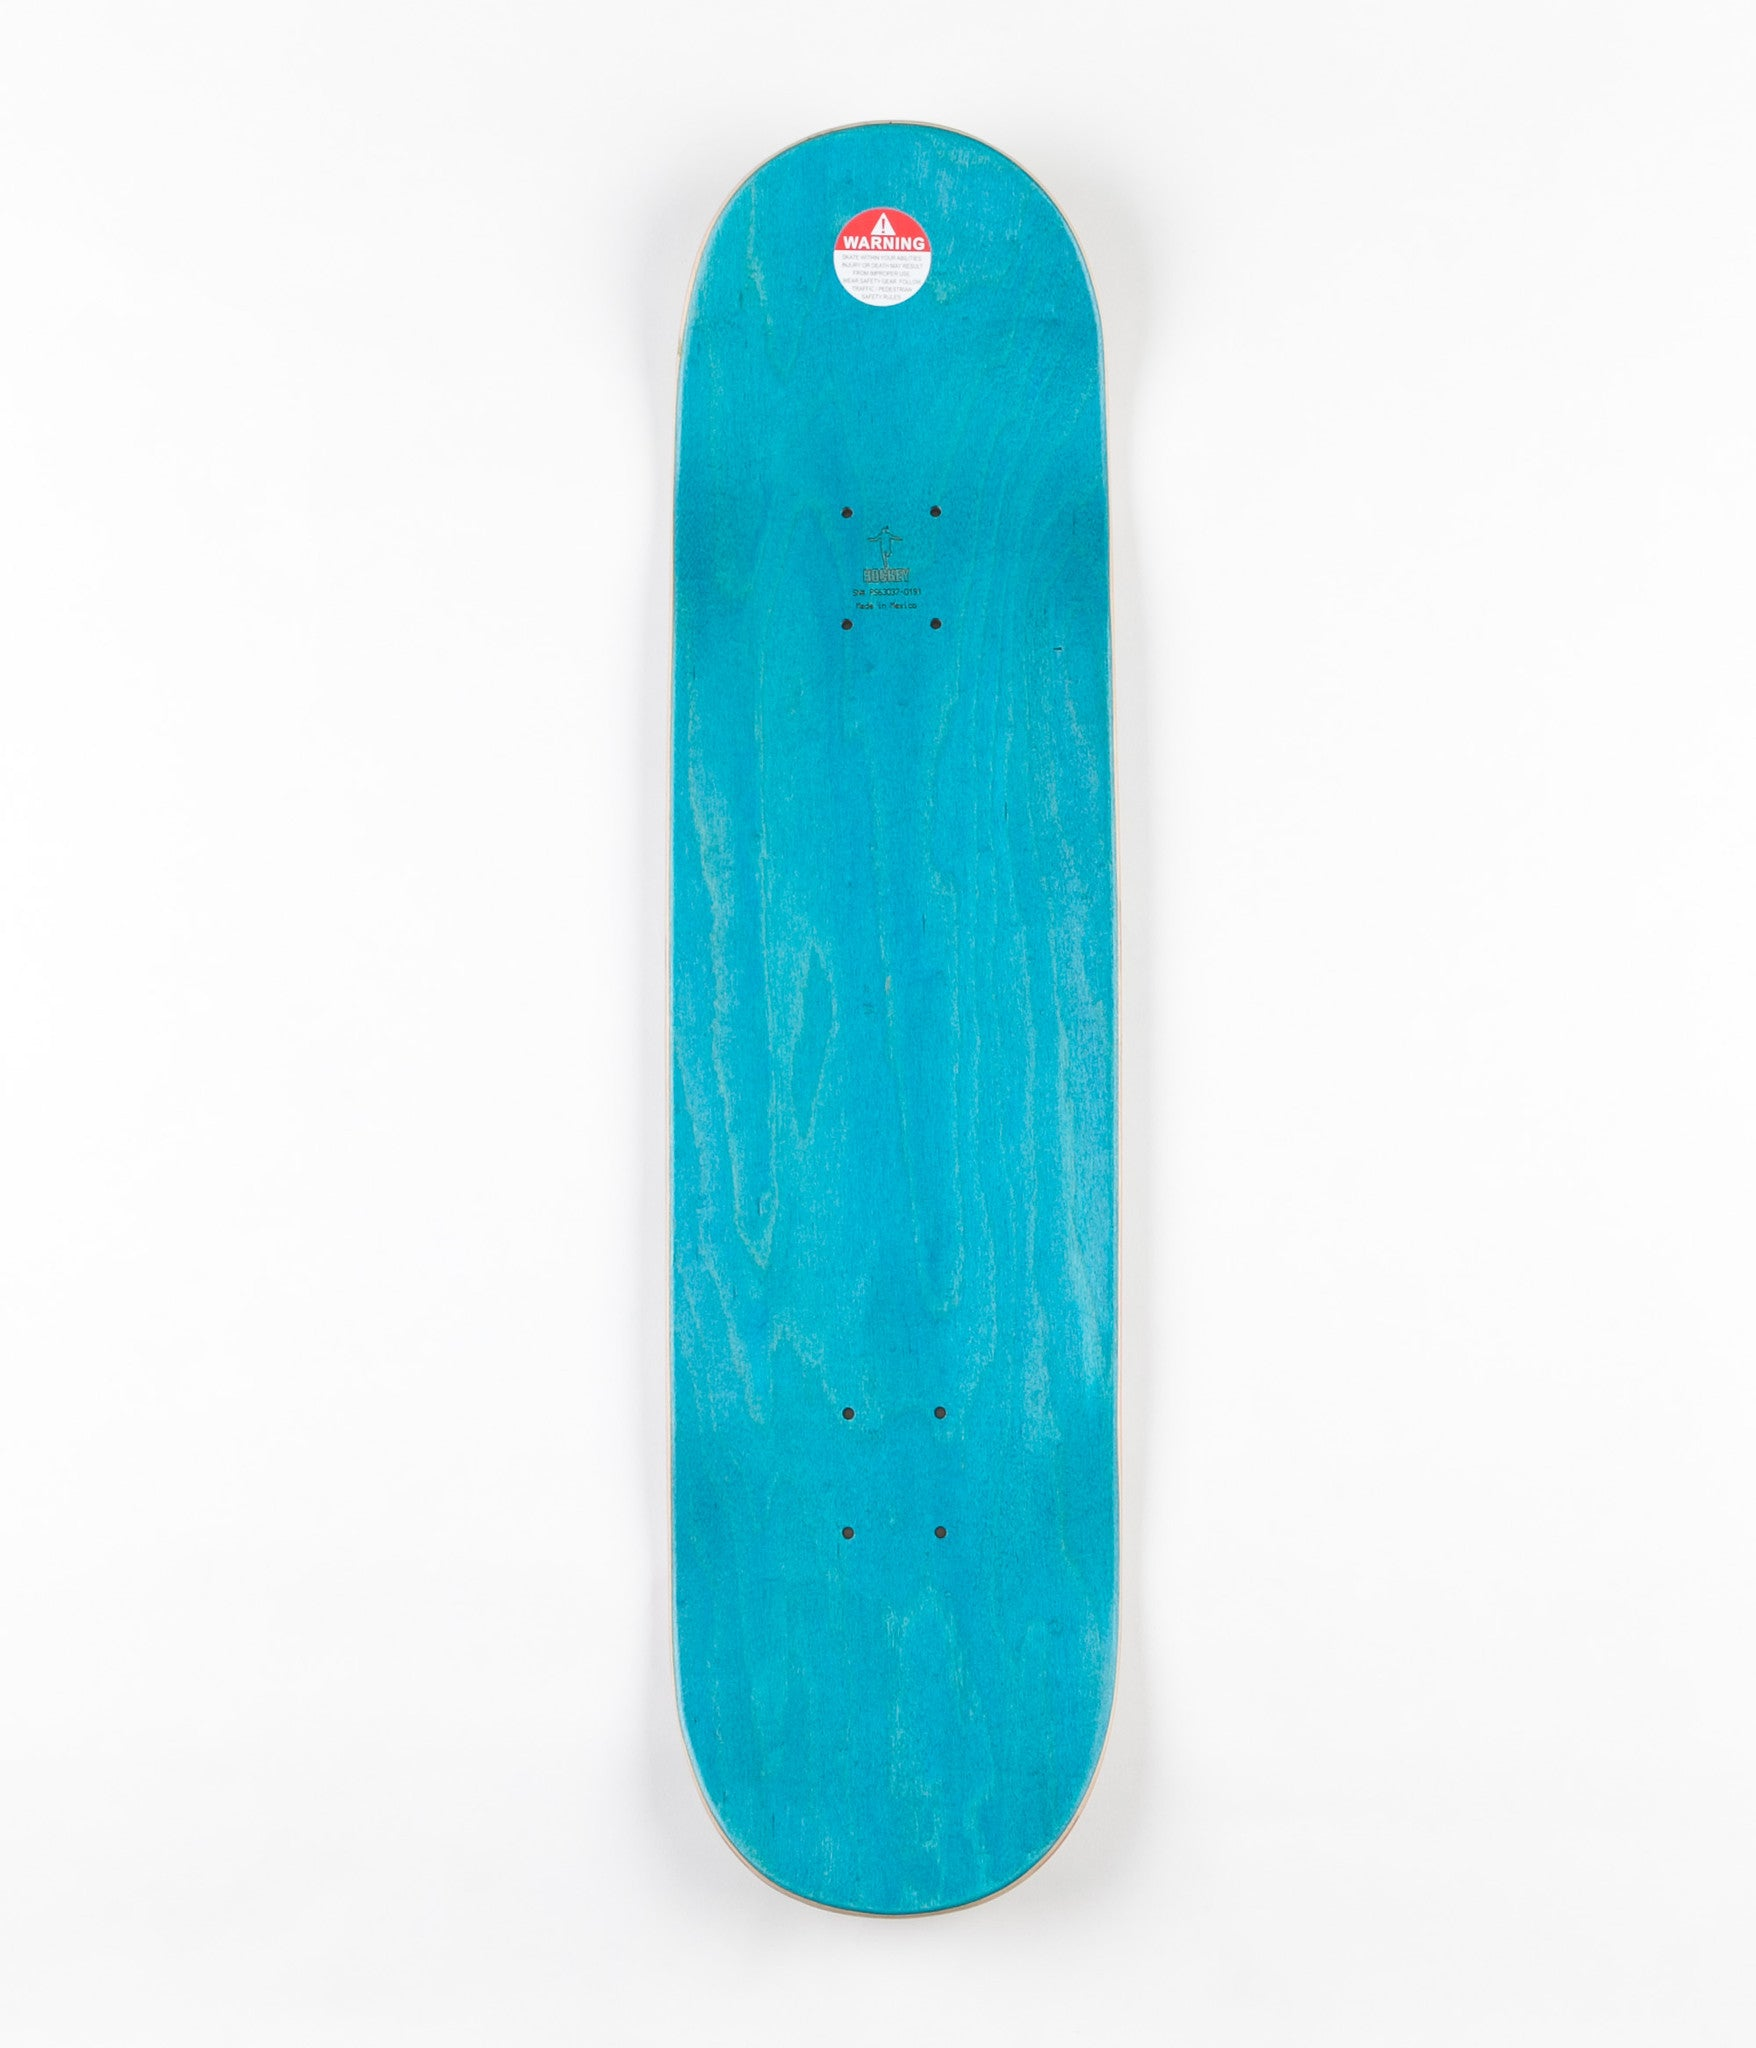 Hockey Vandals Deck - Gold - 8.38""